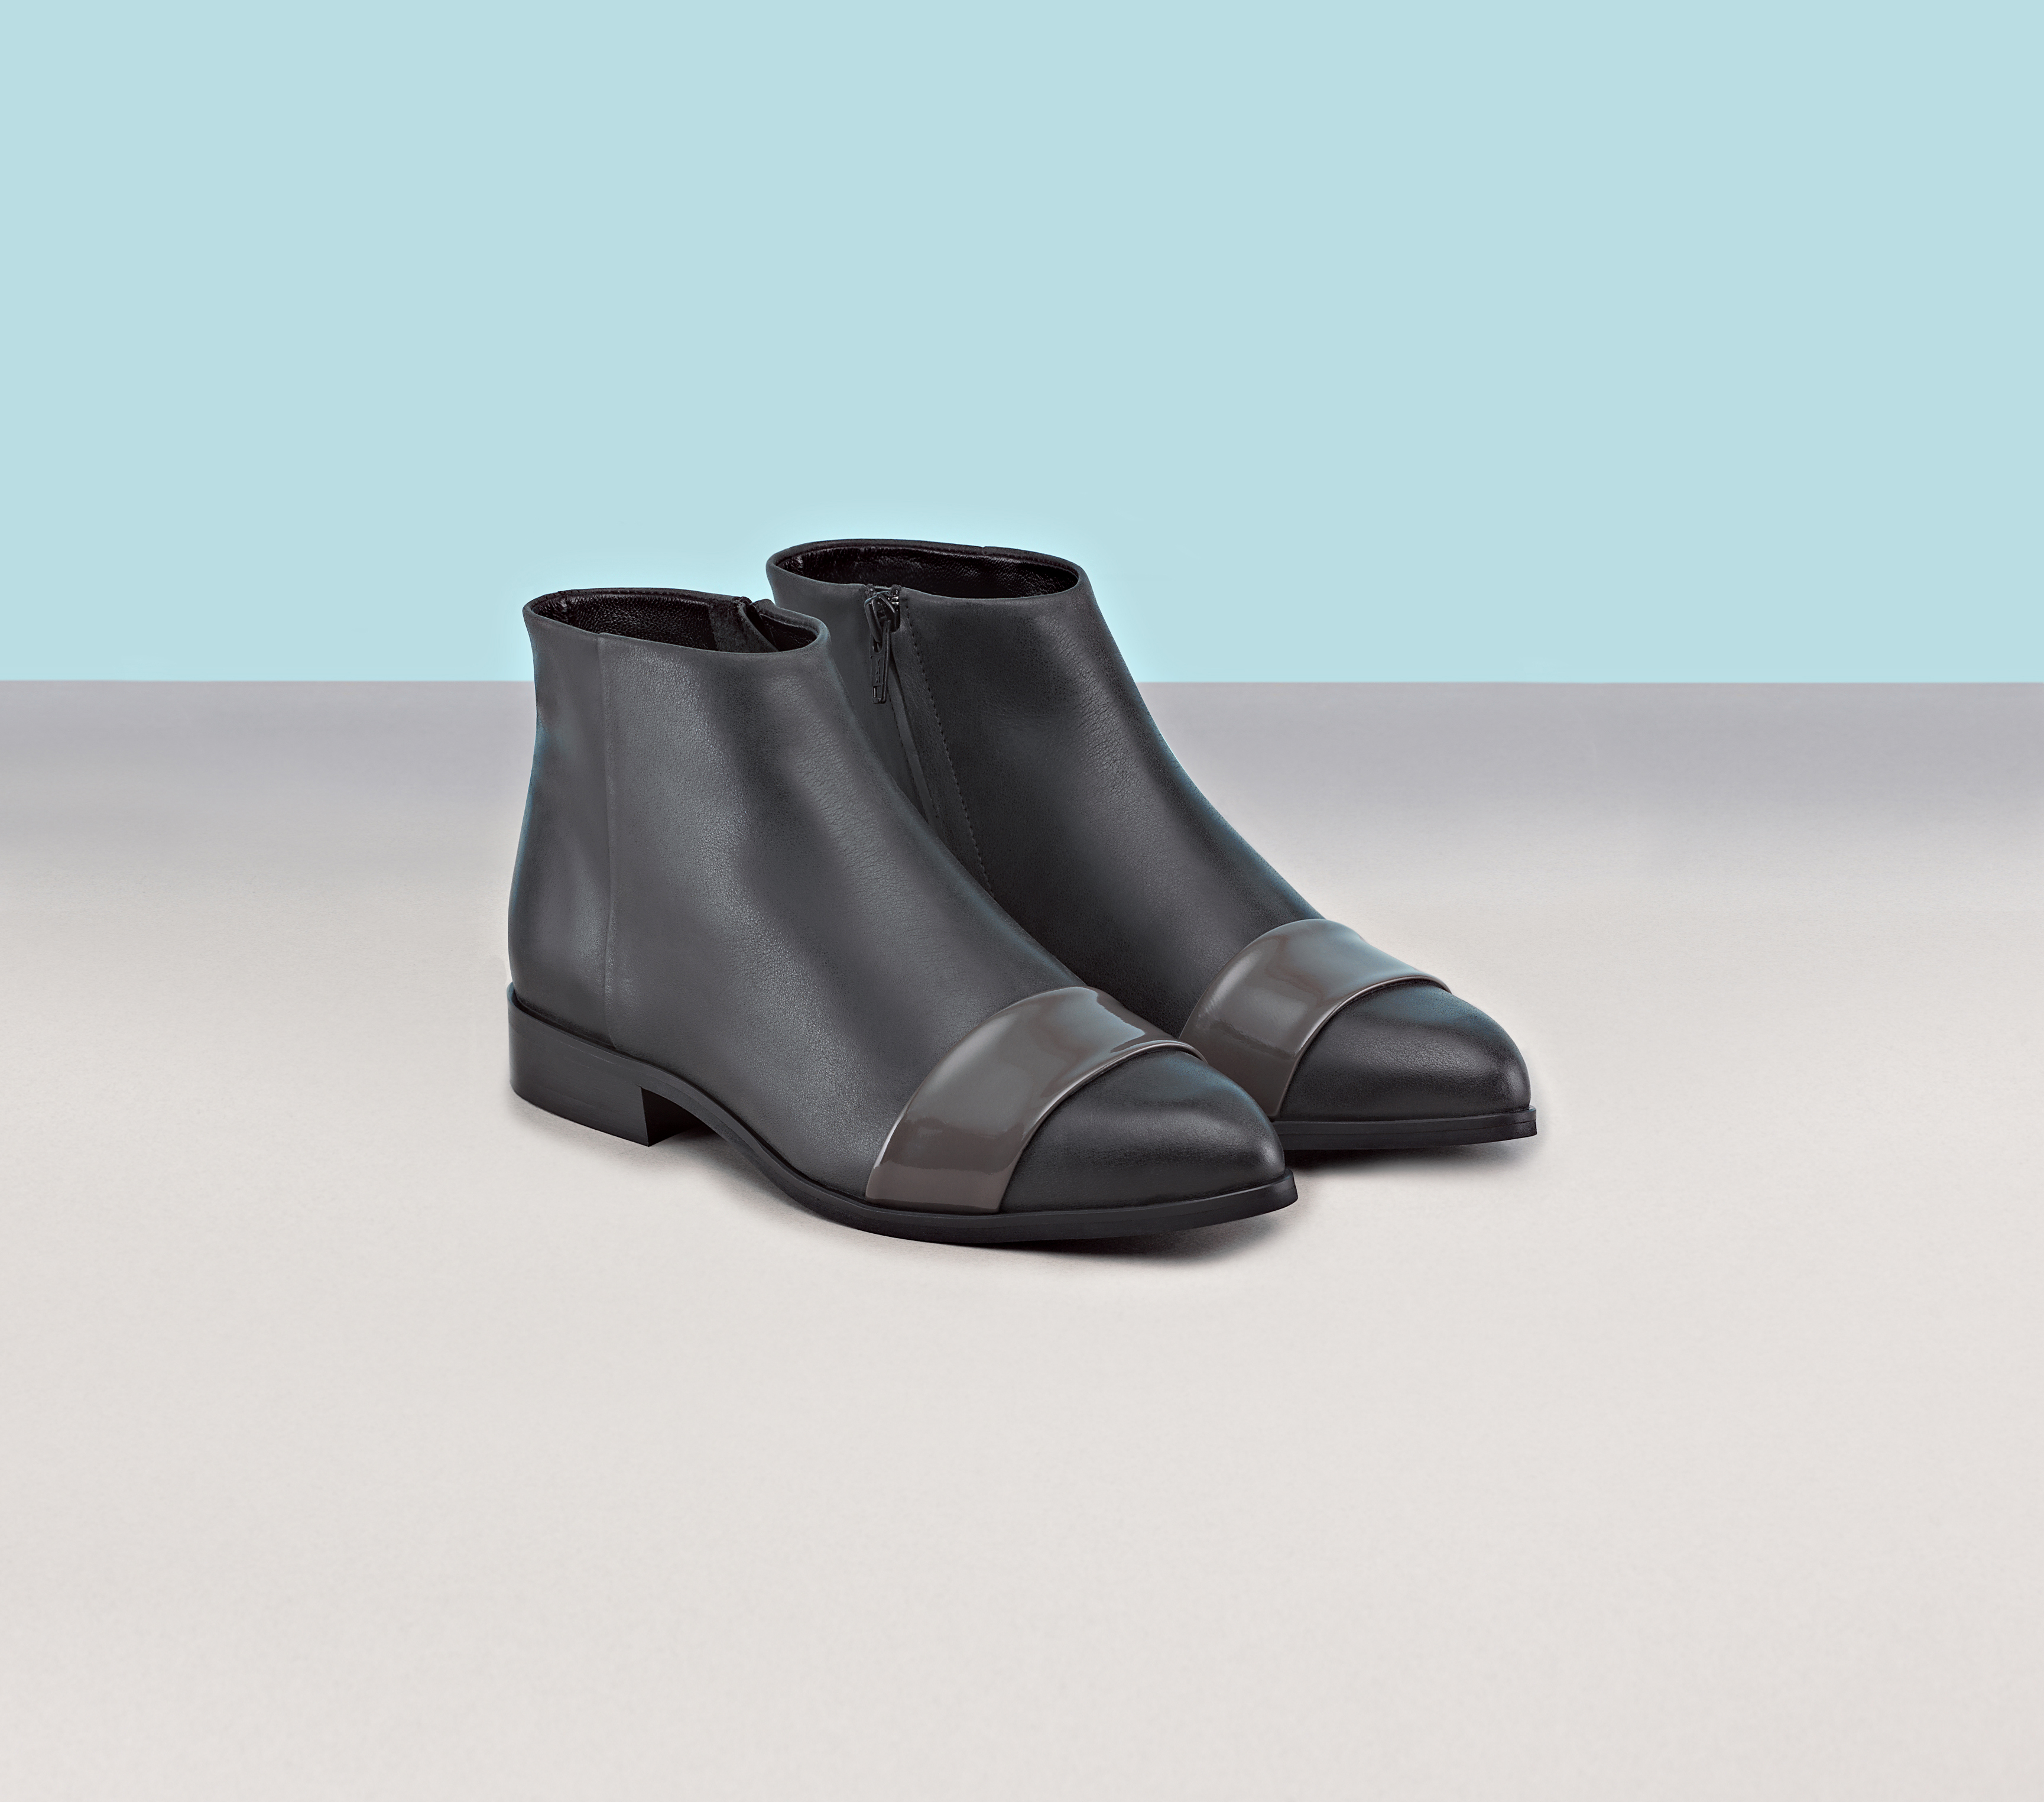 finery hendrick leather flat ankle boots in gray